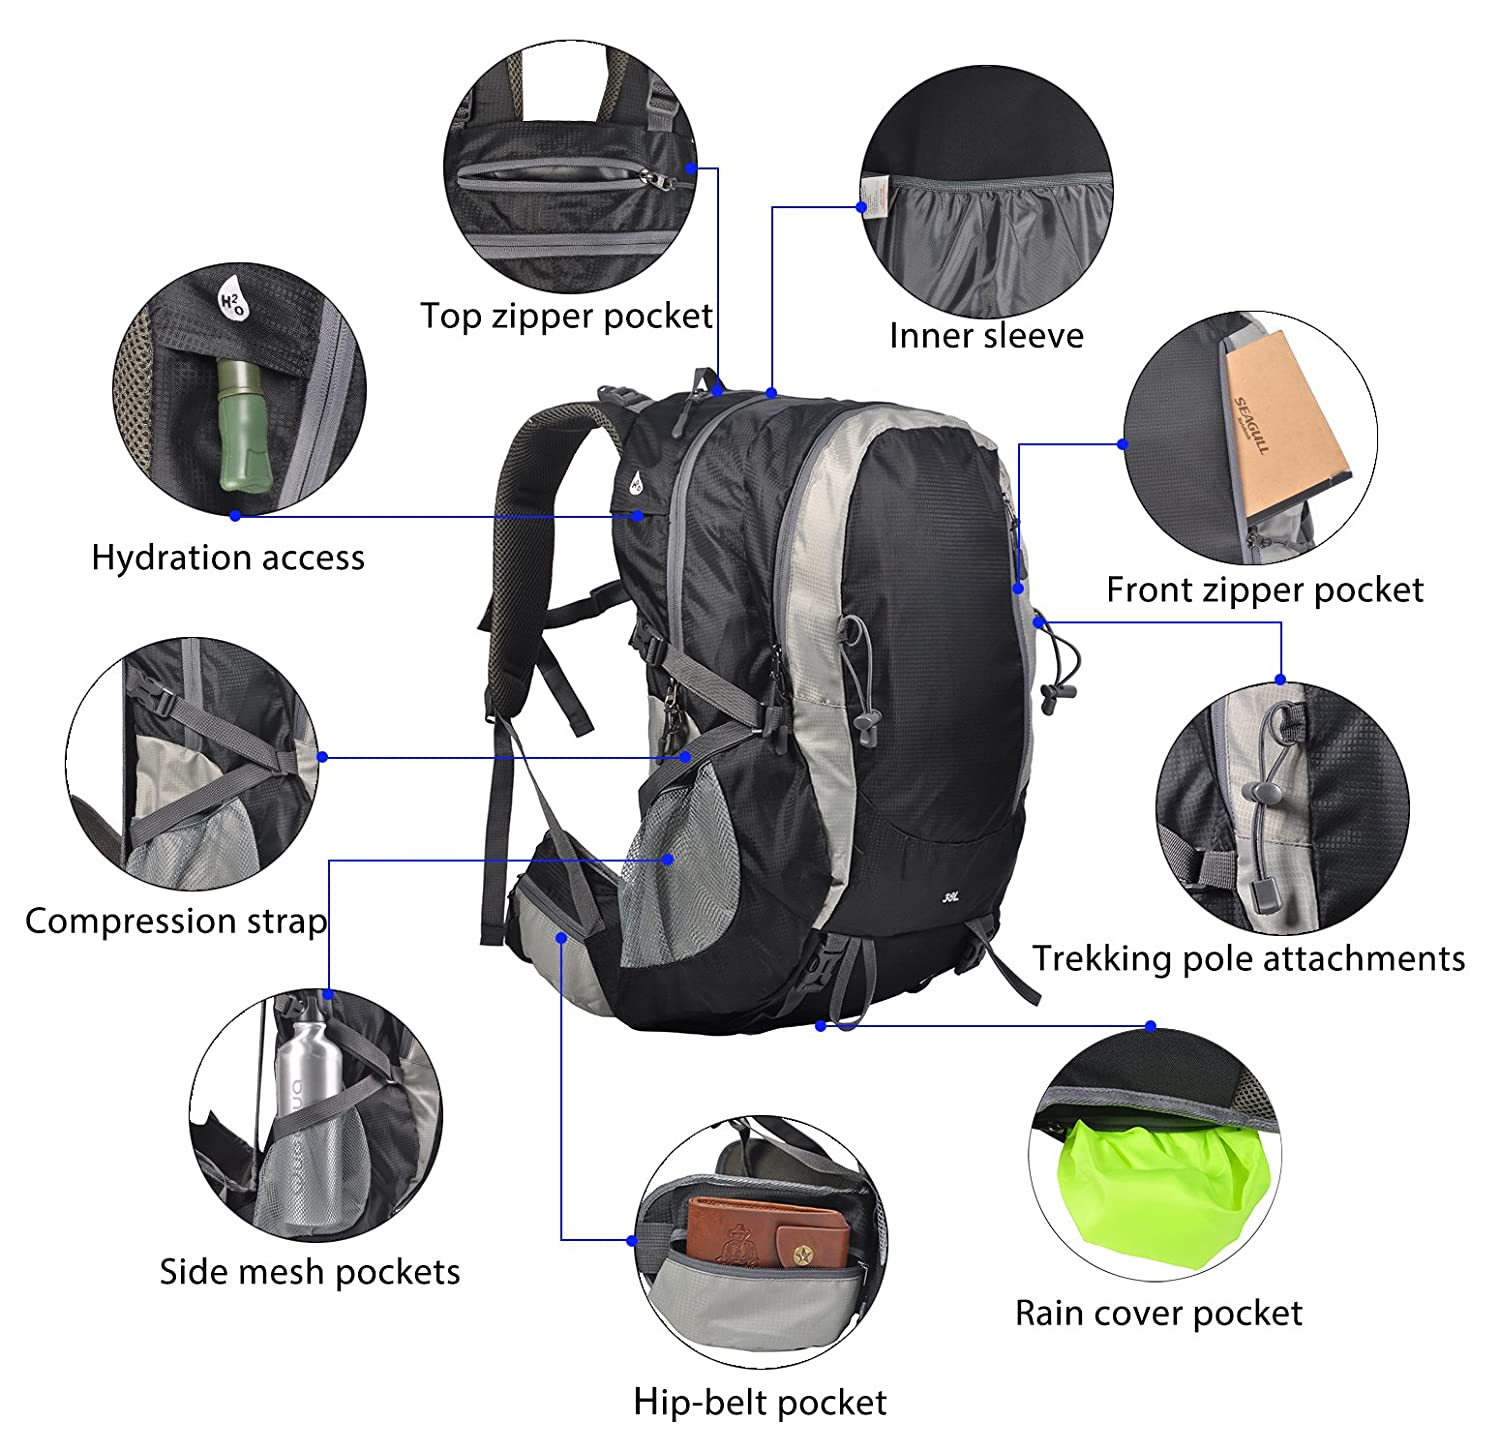 27d8cfc3b092 MIER 38L Hiking Backpack Waterproof Rain Cover Trekking Camping  Mountaineering Climbing, Outdoor Internal Frame Backpack Men, Women, Youth